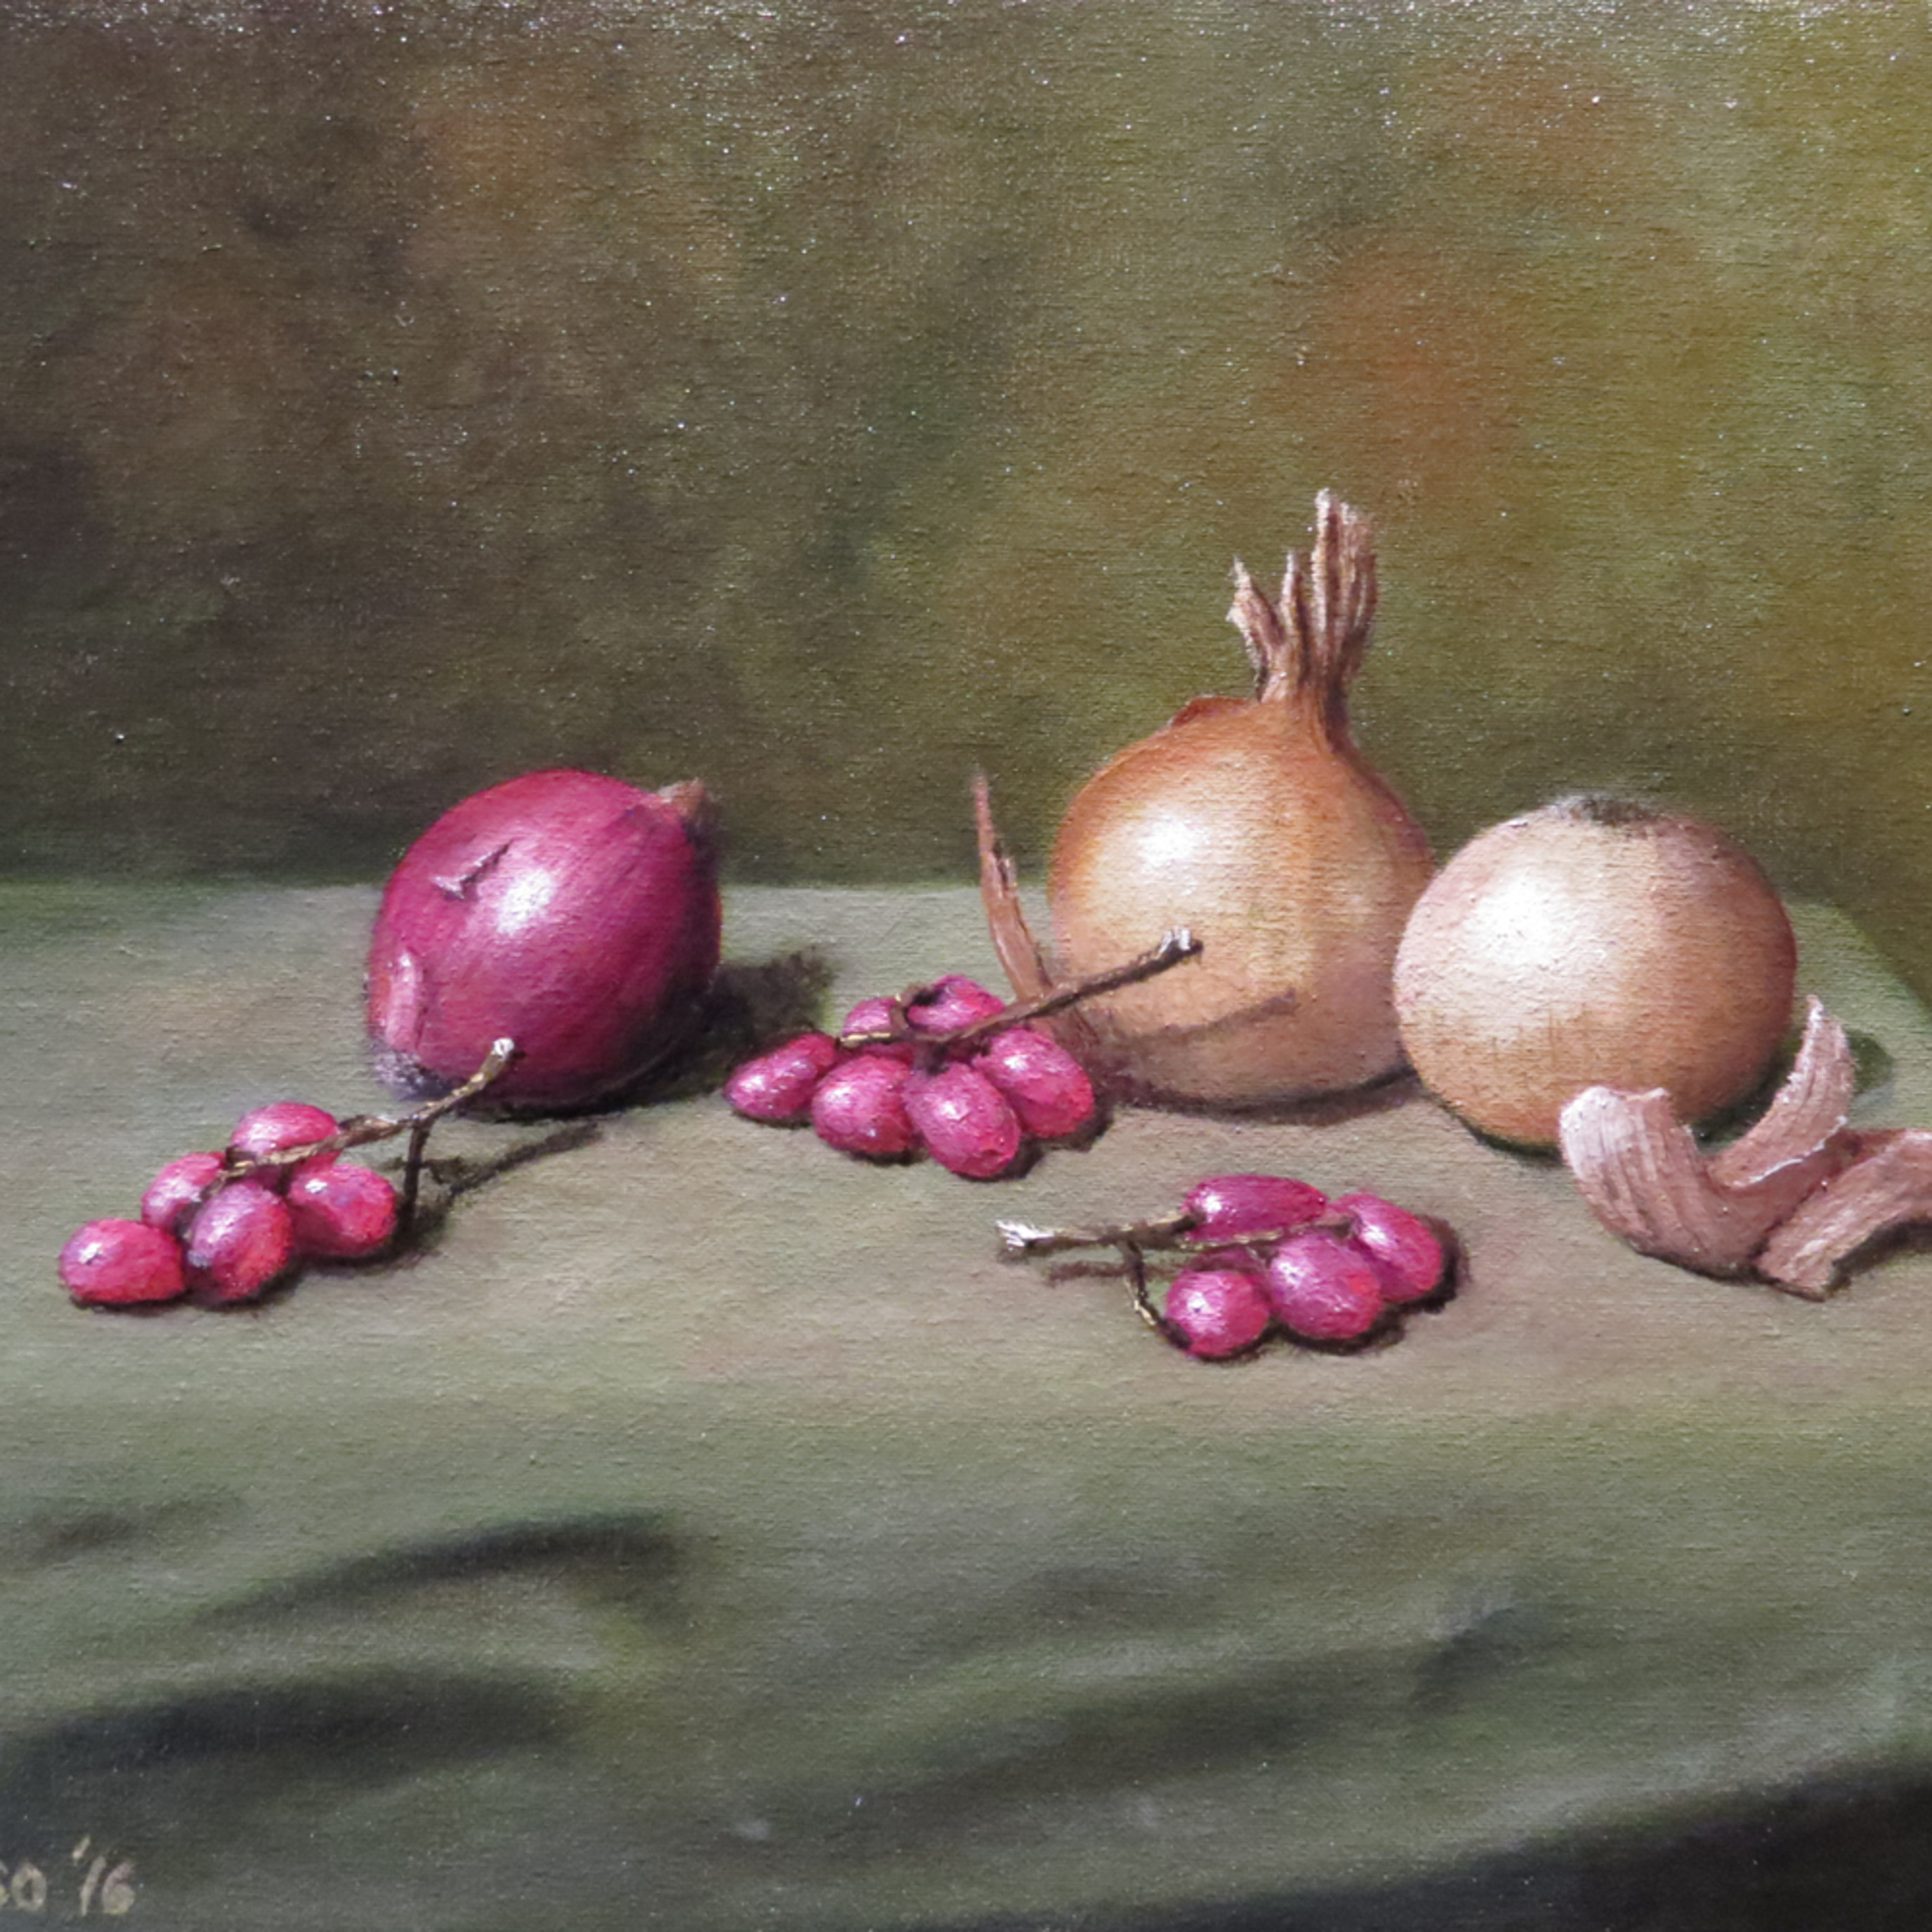 Onions and grapes suuqep